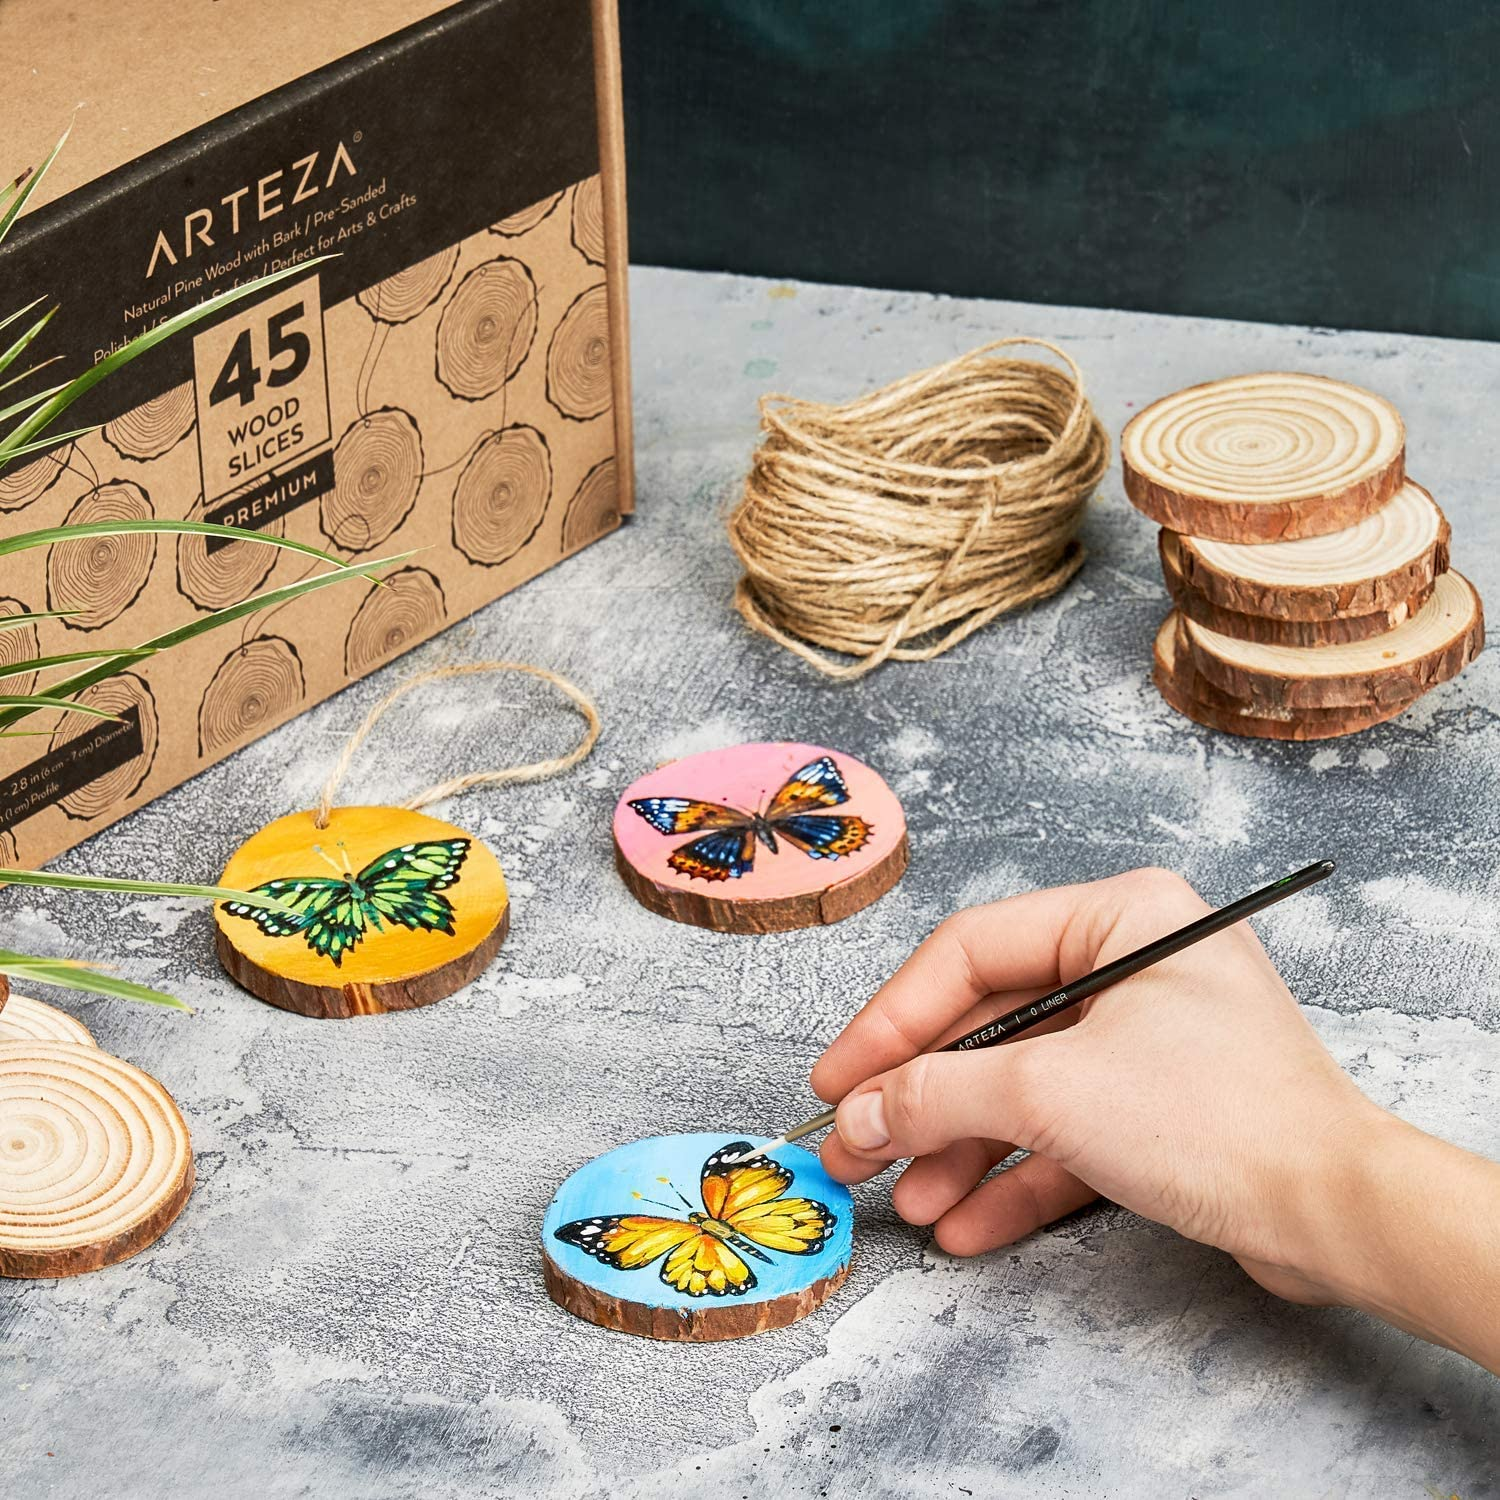 "ARTEZA Wood Slices 45 Pieces with Bark Natural Unfinished Pine 2.4/""-2.8/"" Smooth"